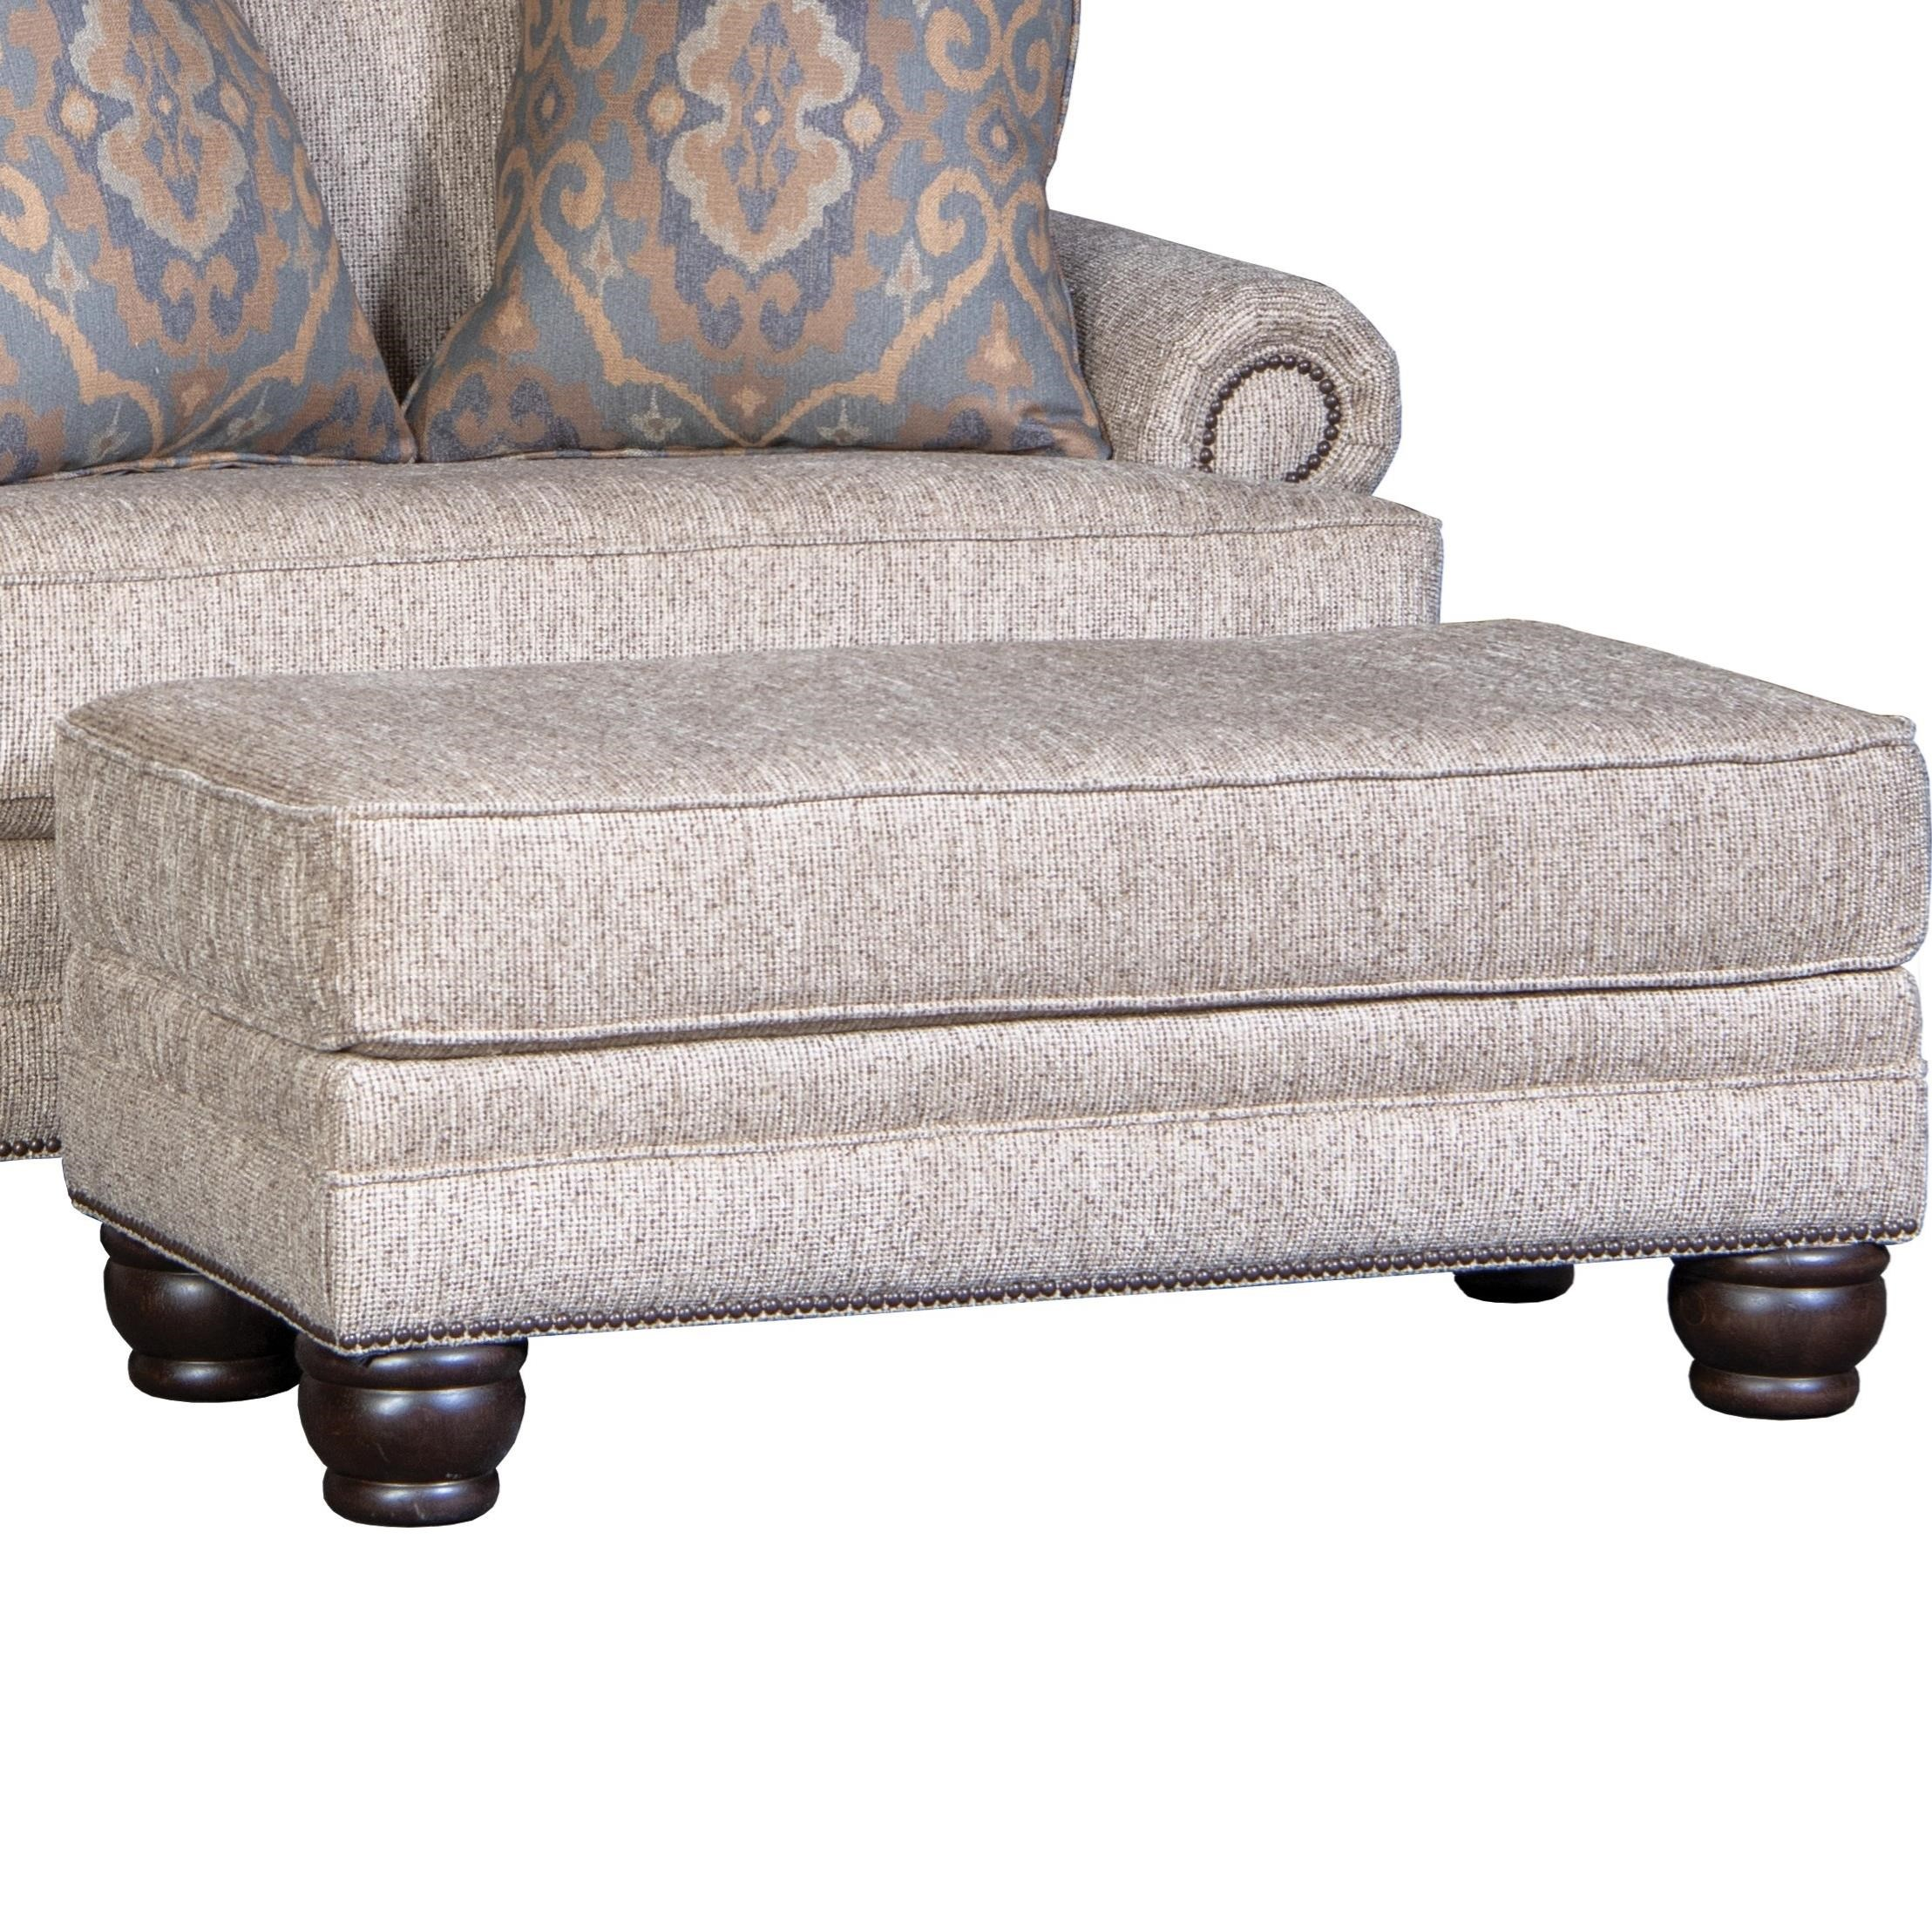 5260 Ottoman by Mayo at Wilson's Furniture